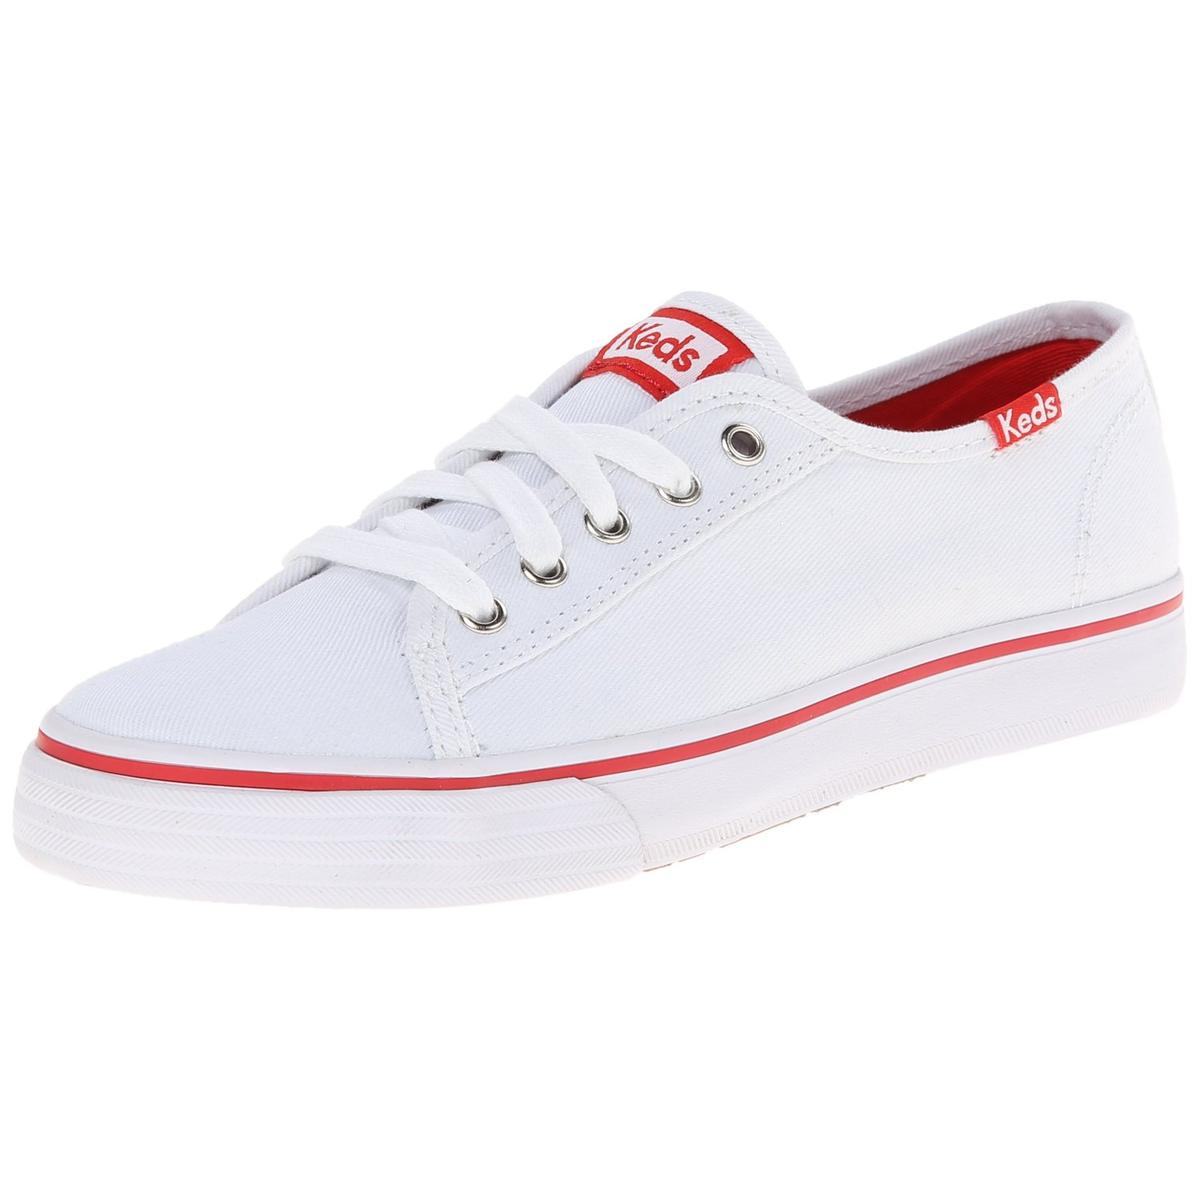 Keds Double Up Girls White Sneakers by Keds